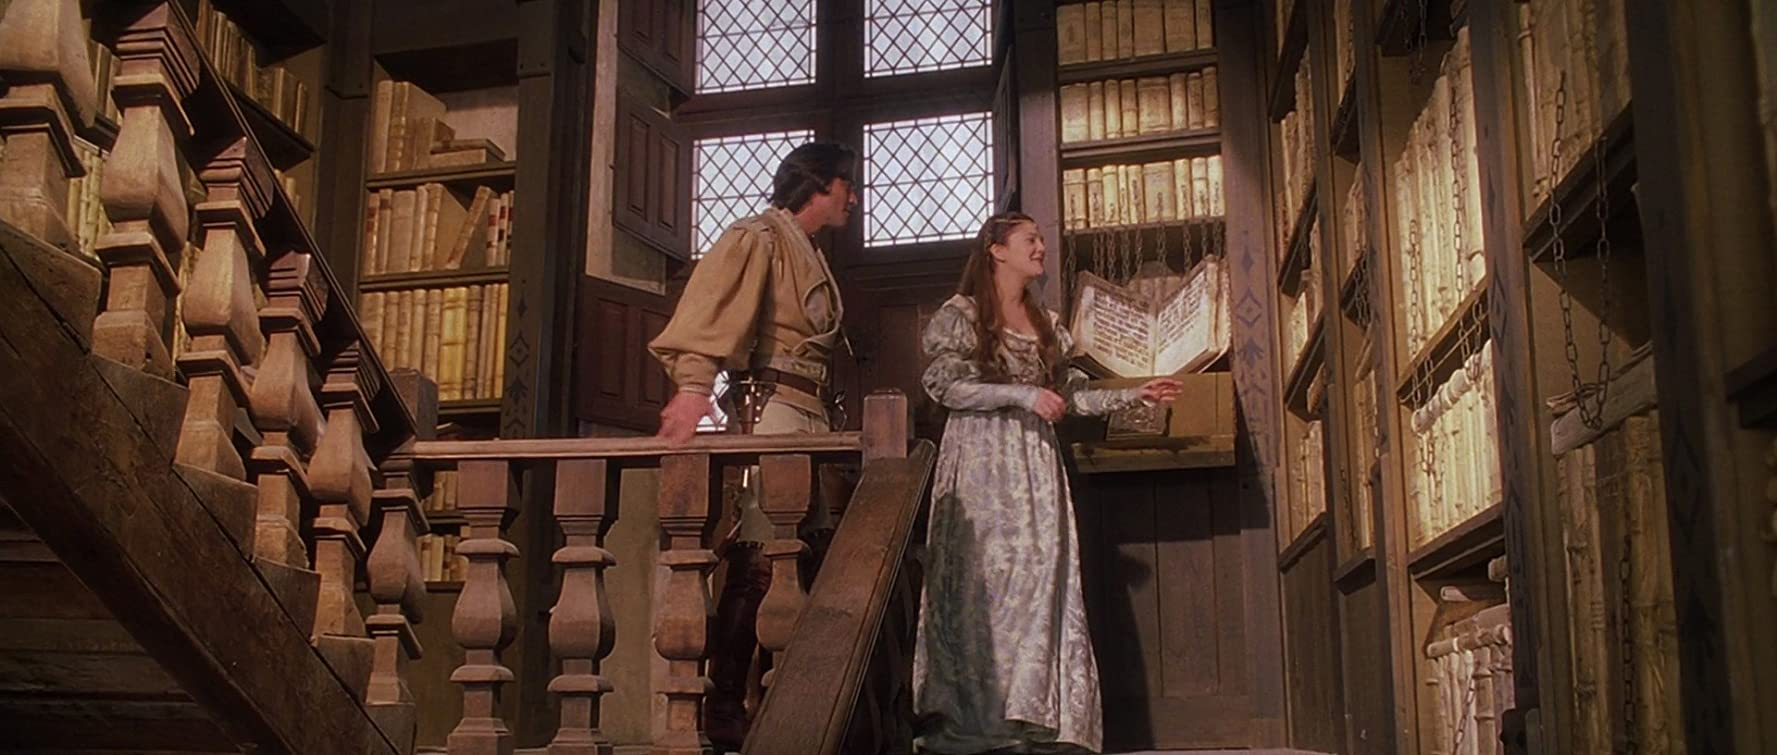 Drew Barrymore and Dougray Scott in EverAfter (1998)